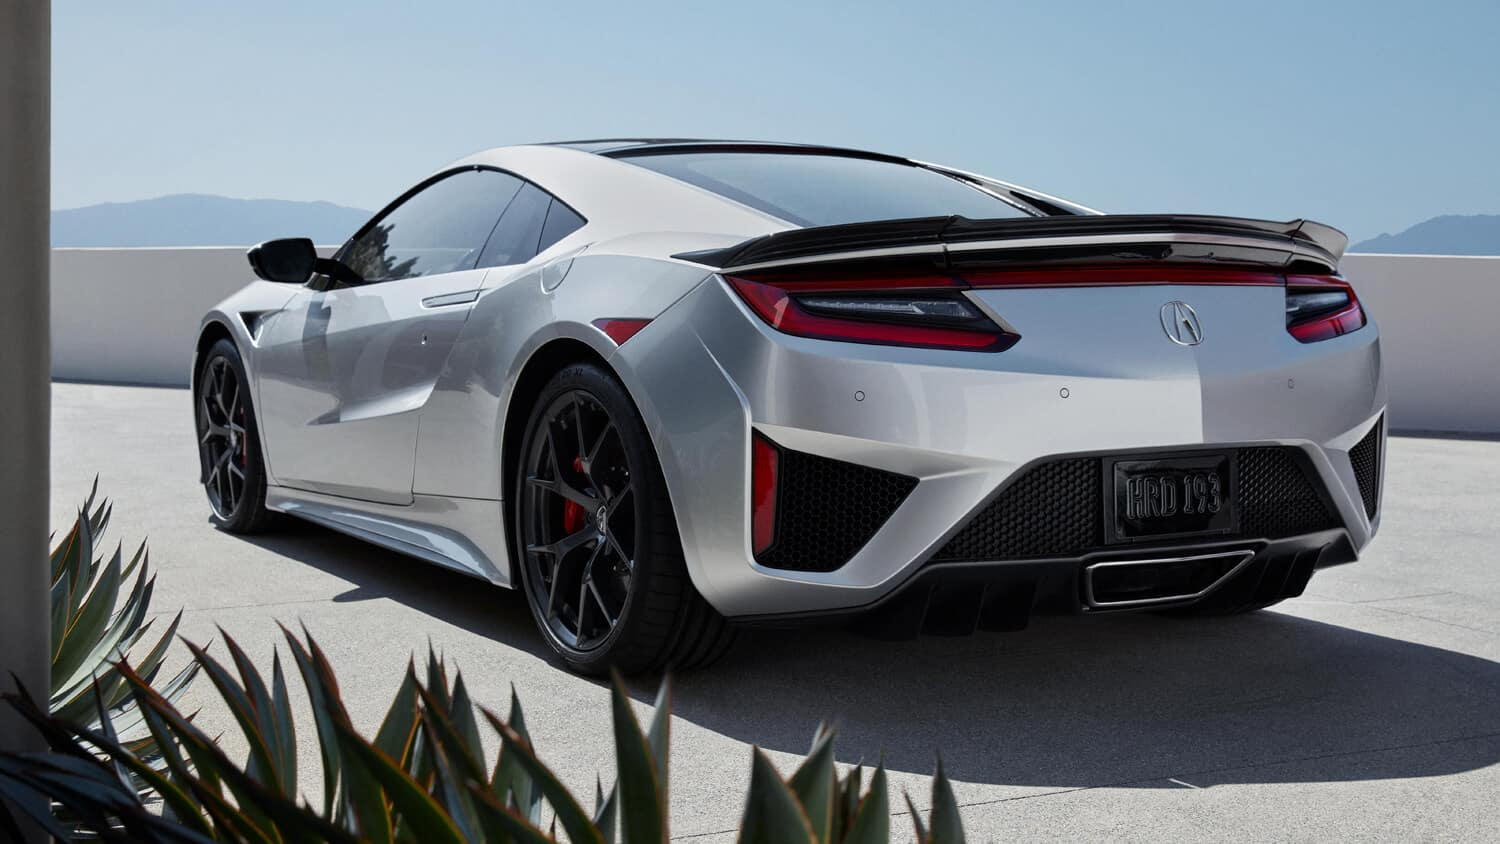 2019 Acura NSX Exterior Rear Angle Driver Side